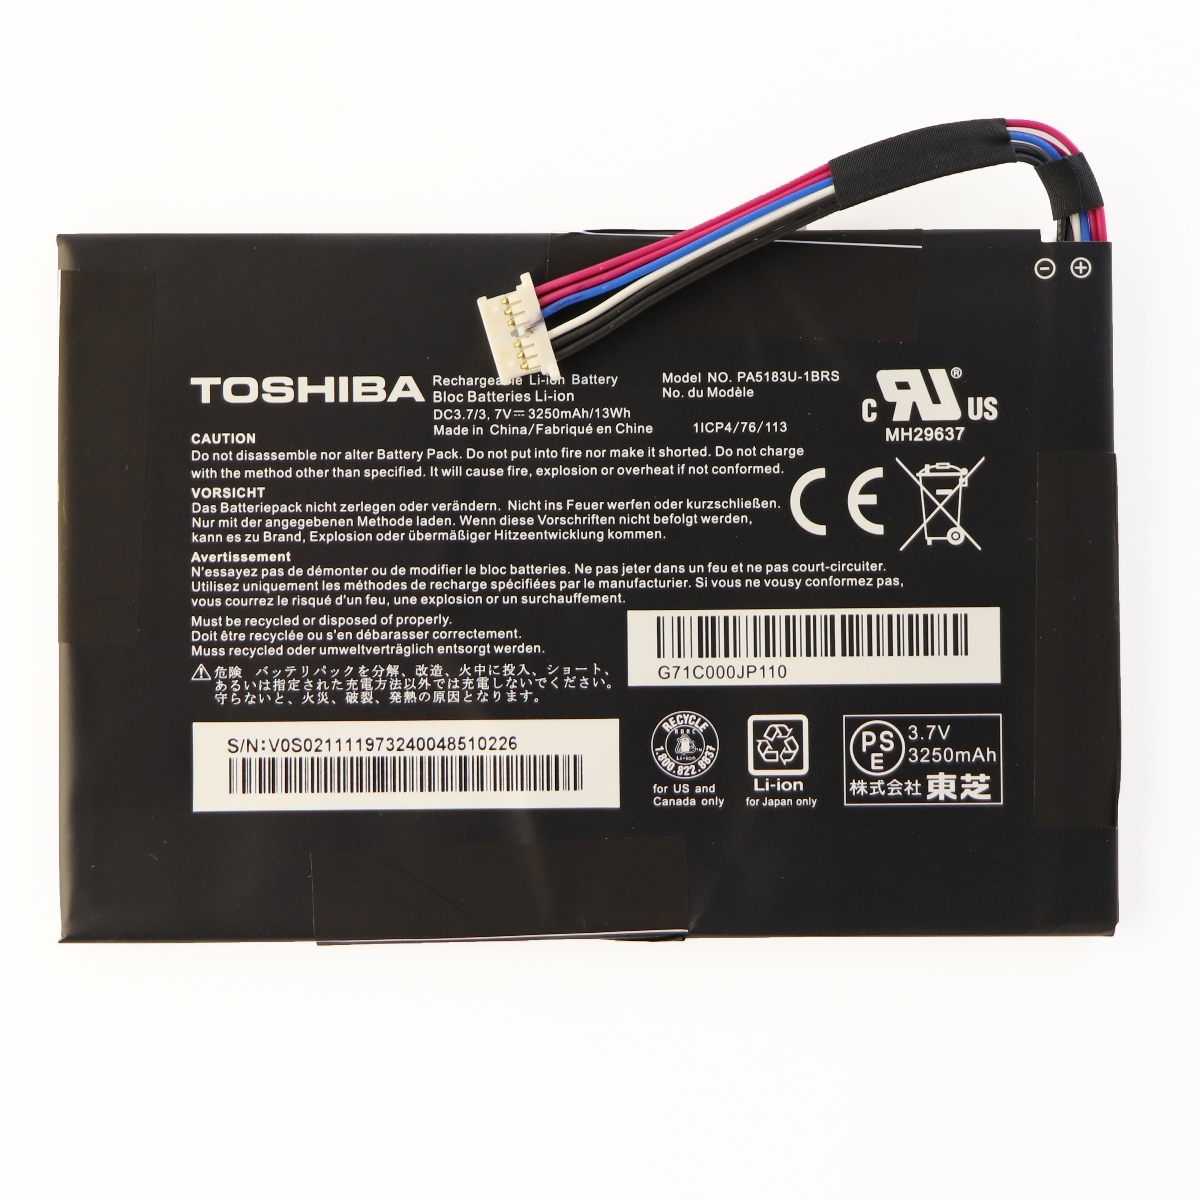 Battery for Toshiba Excite Go 7inch AT7C8 - Black